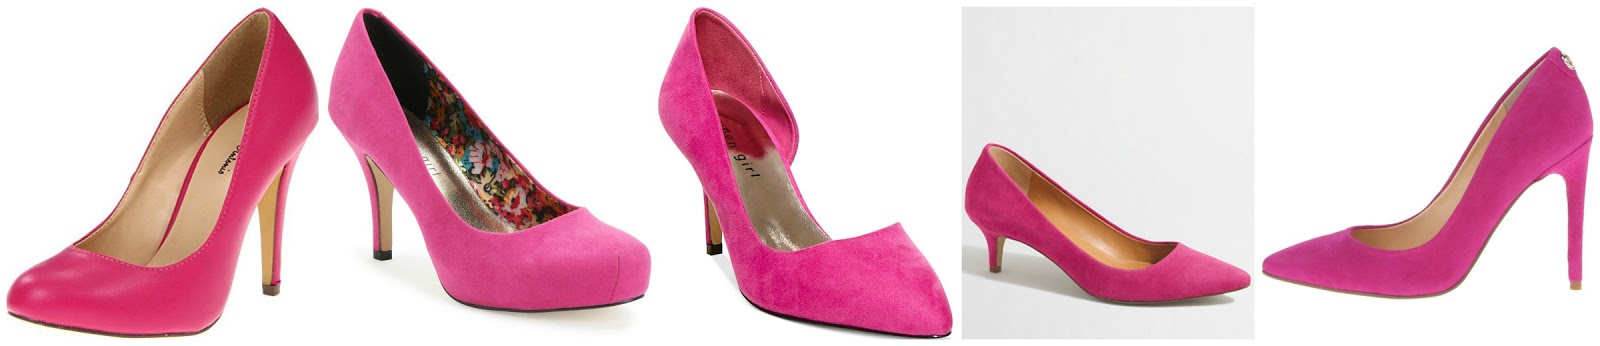 Wear It For Less: REESE WITHERSPOON: POP OF PINK